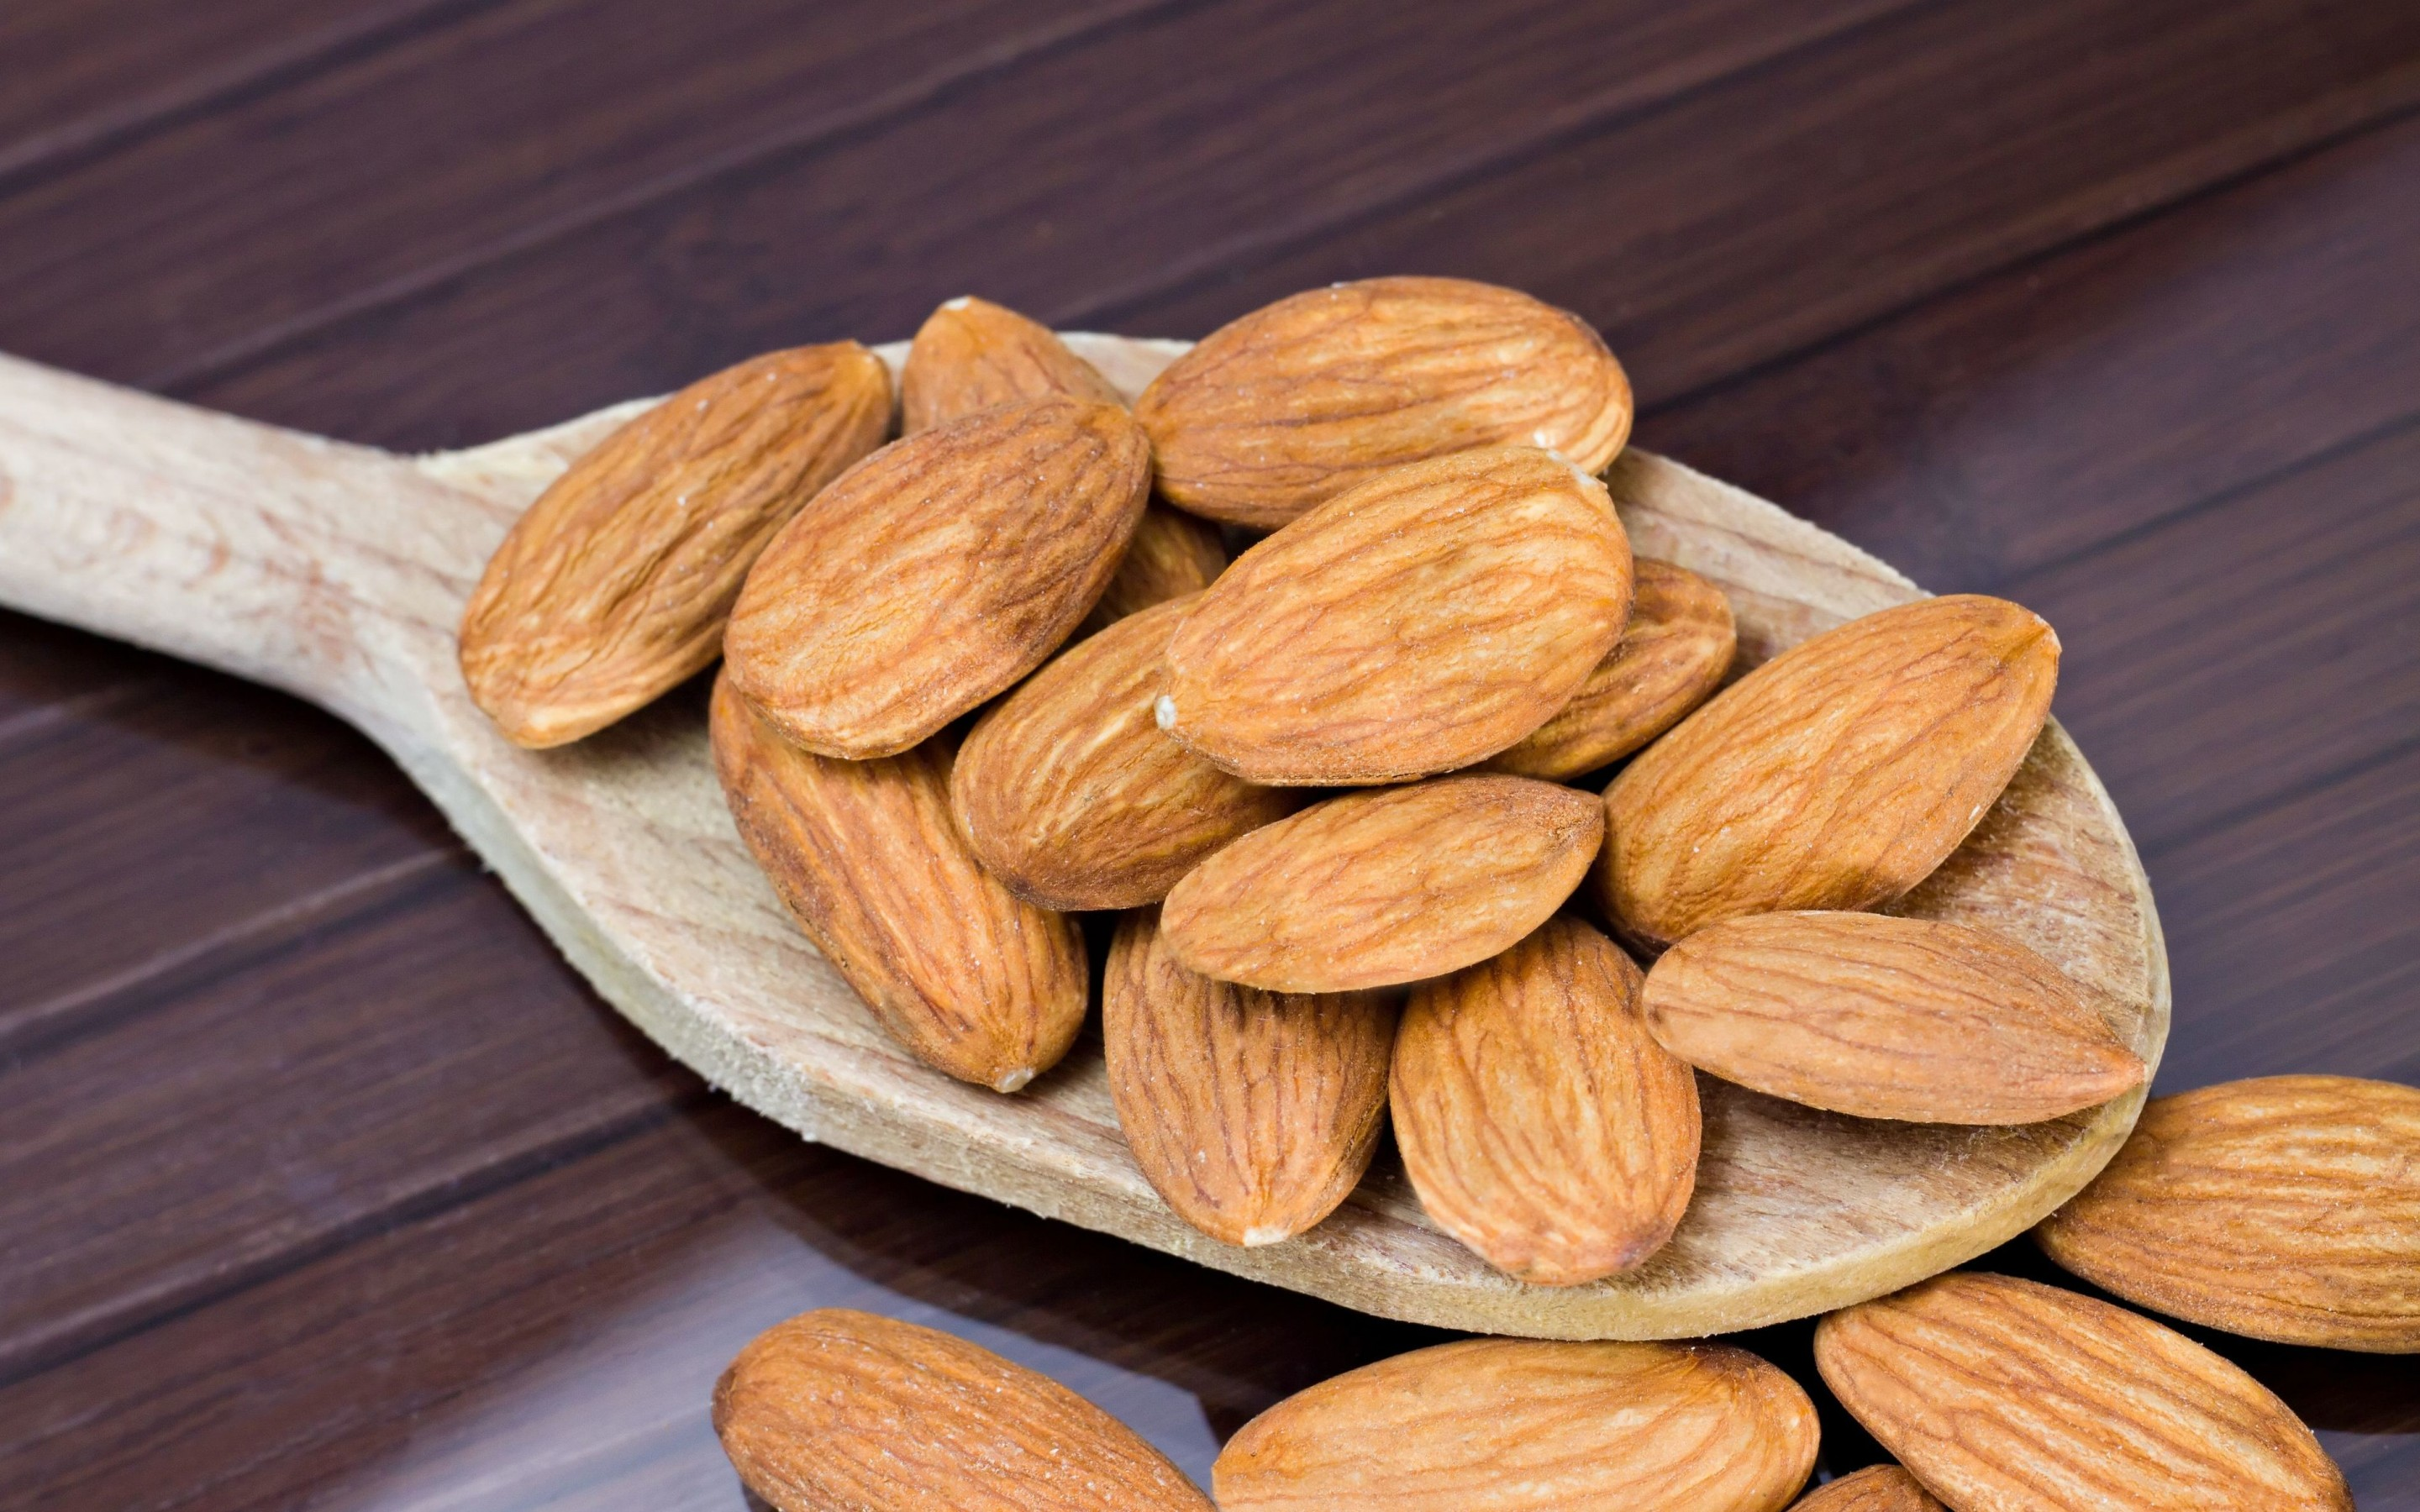 17 almond hd wallpapers | background images - wallpaper abyss